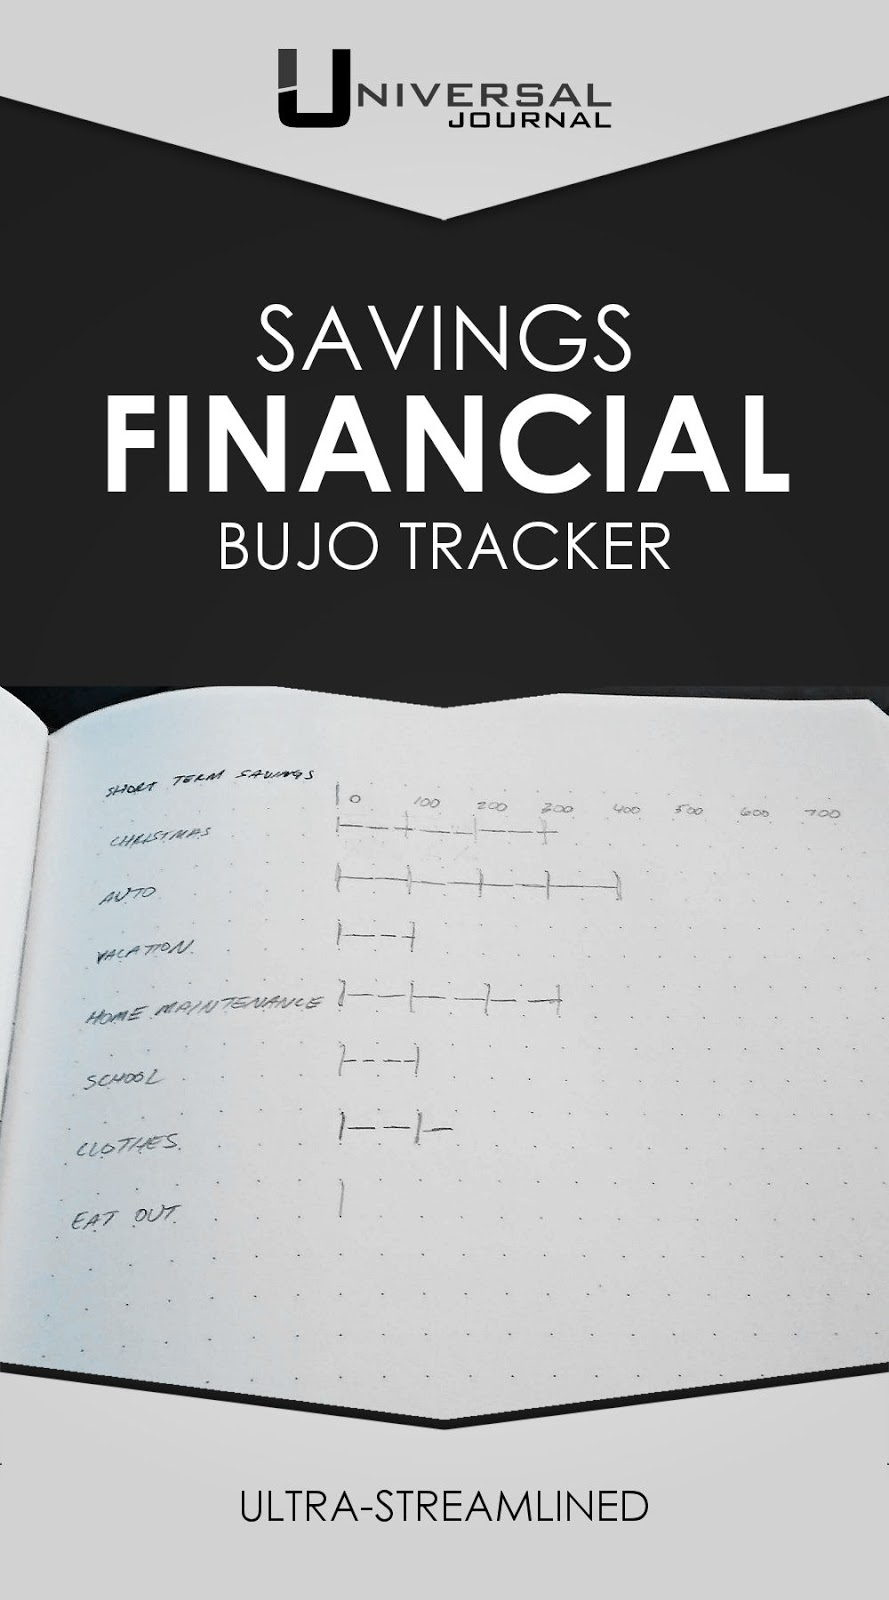 bullet journal minimalist savings bujo tracker